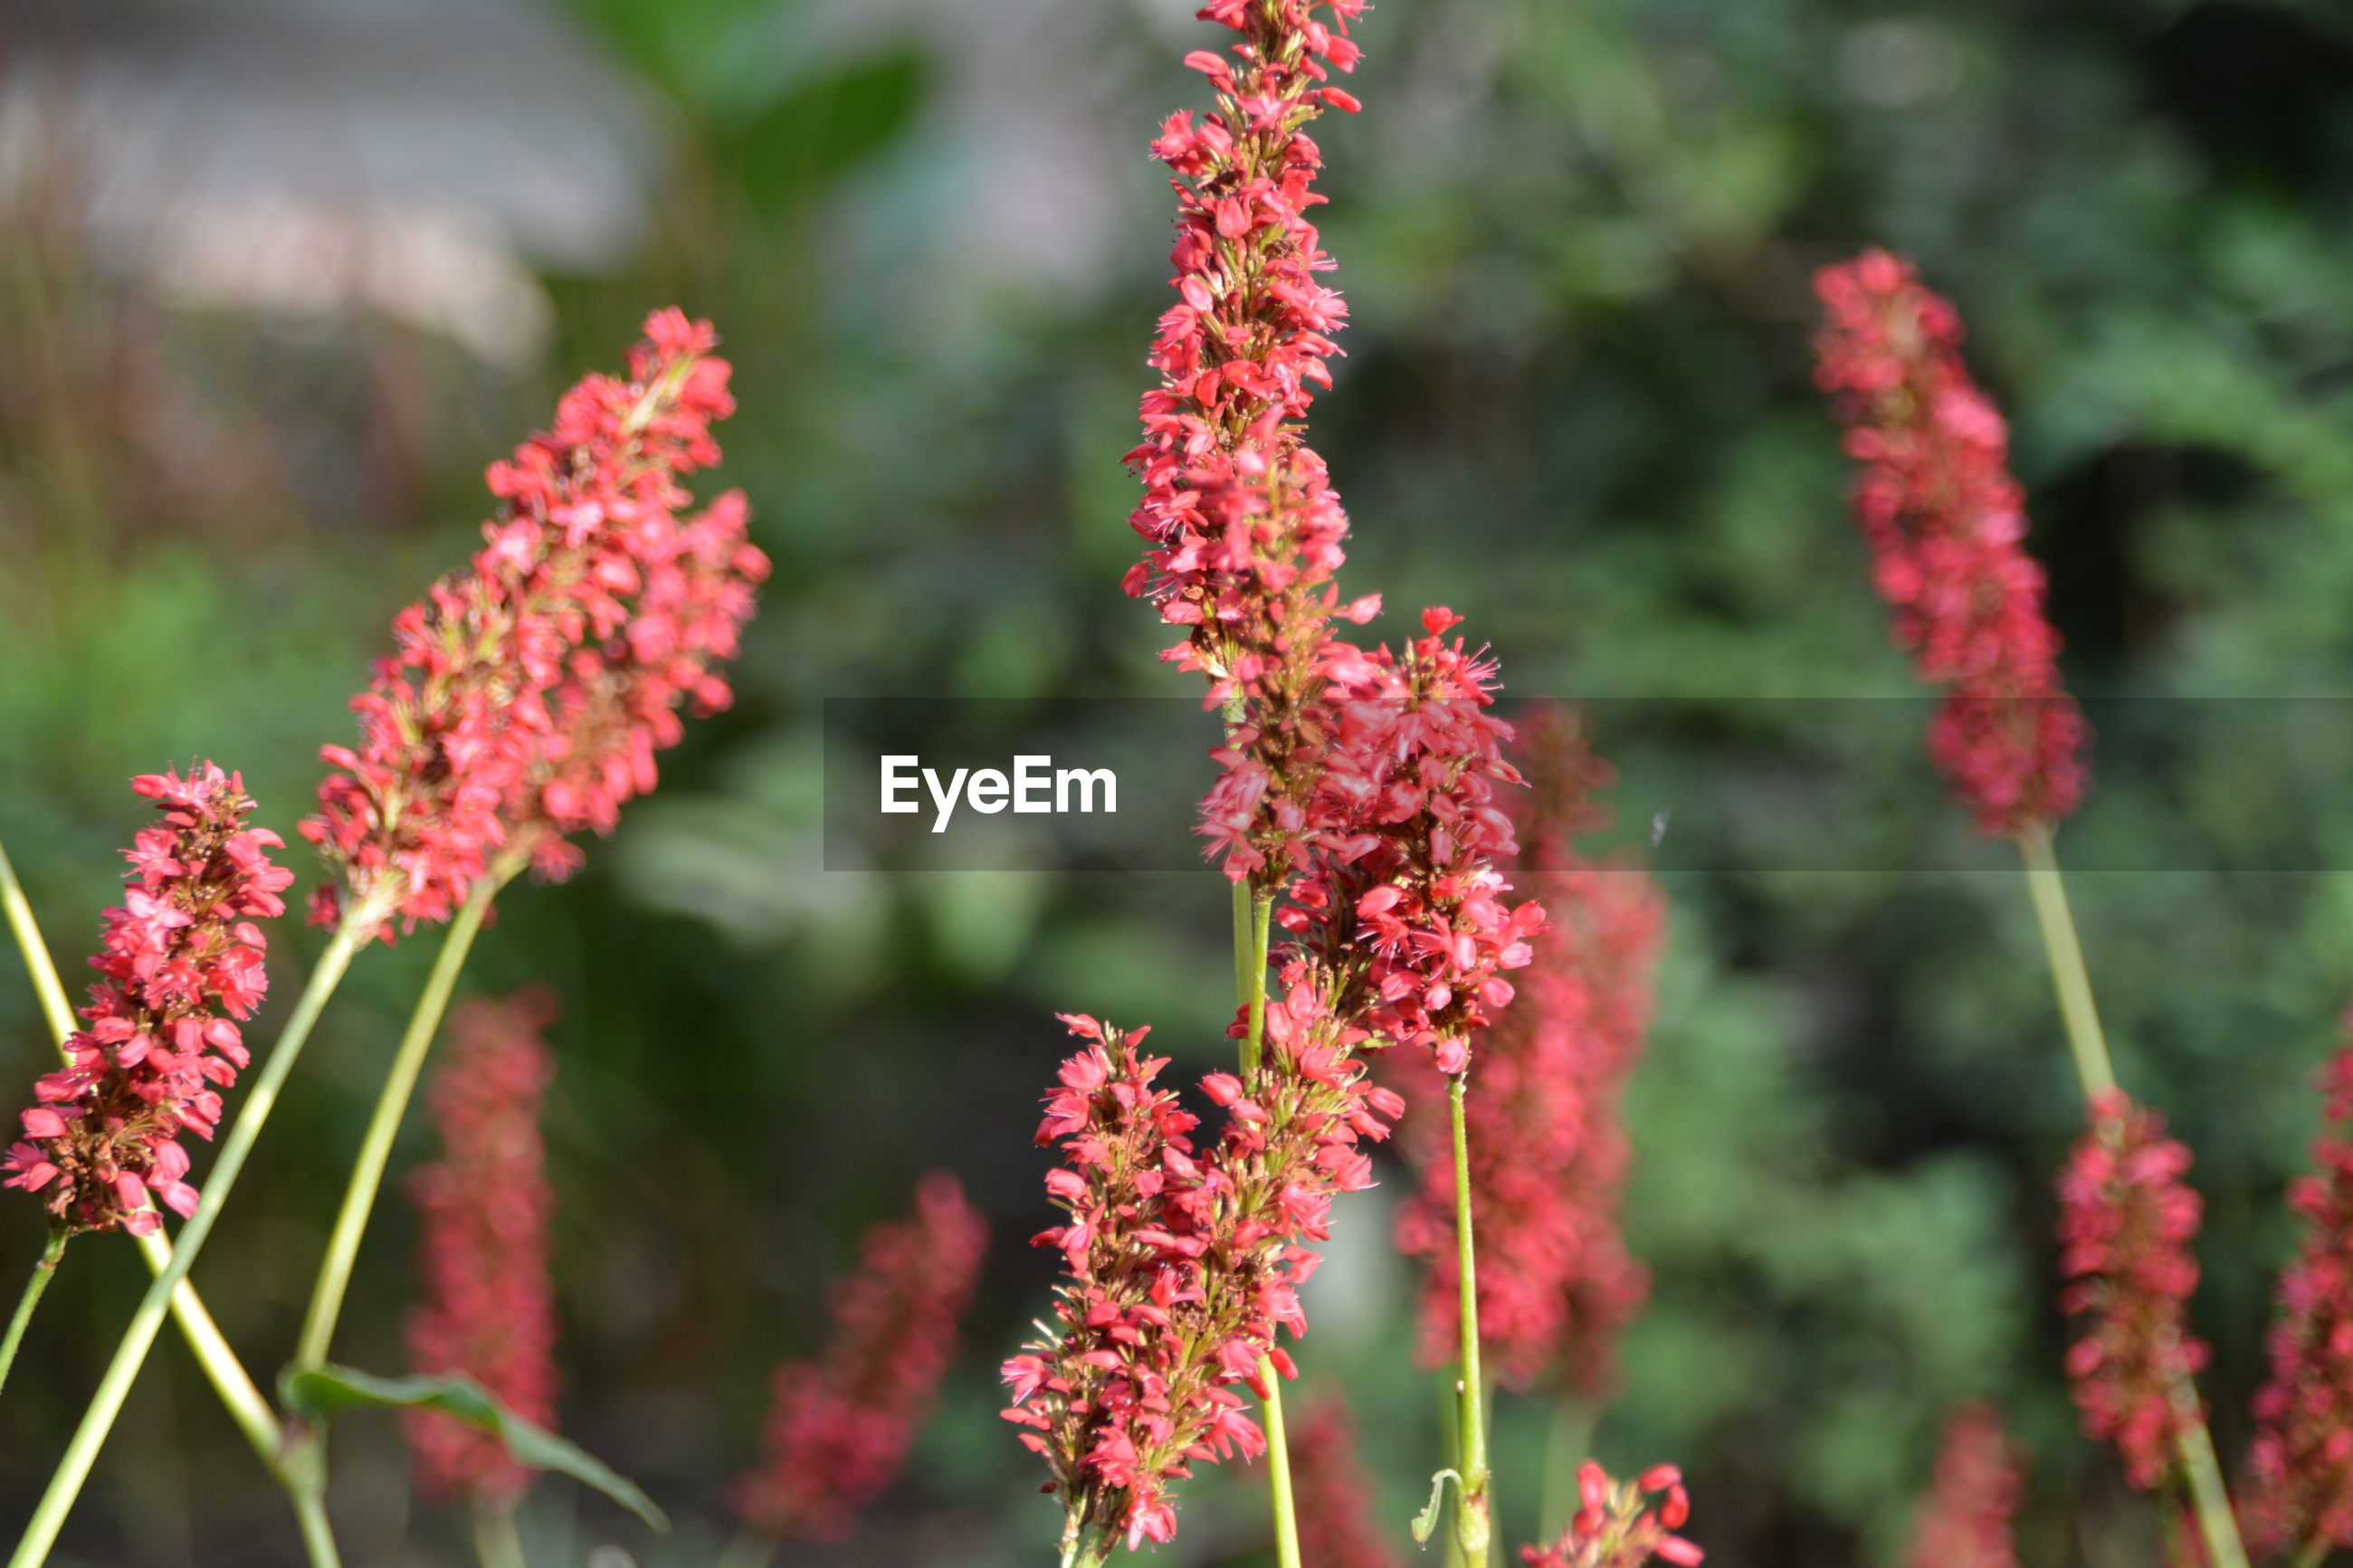 growth, nature, flower, plant, beauty in nature, focus on foreground, no people, day, red, outdoors, fragility, close-up, freshness, blooming